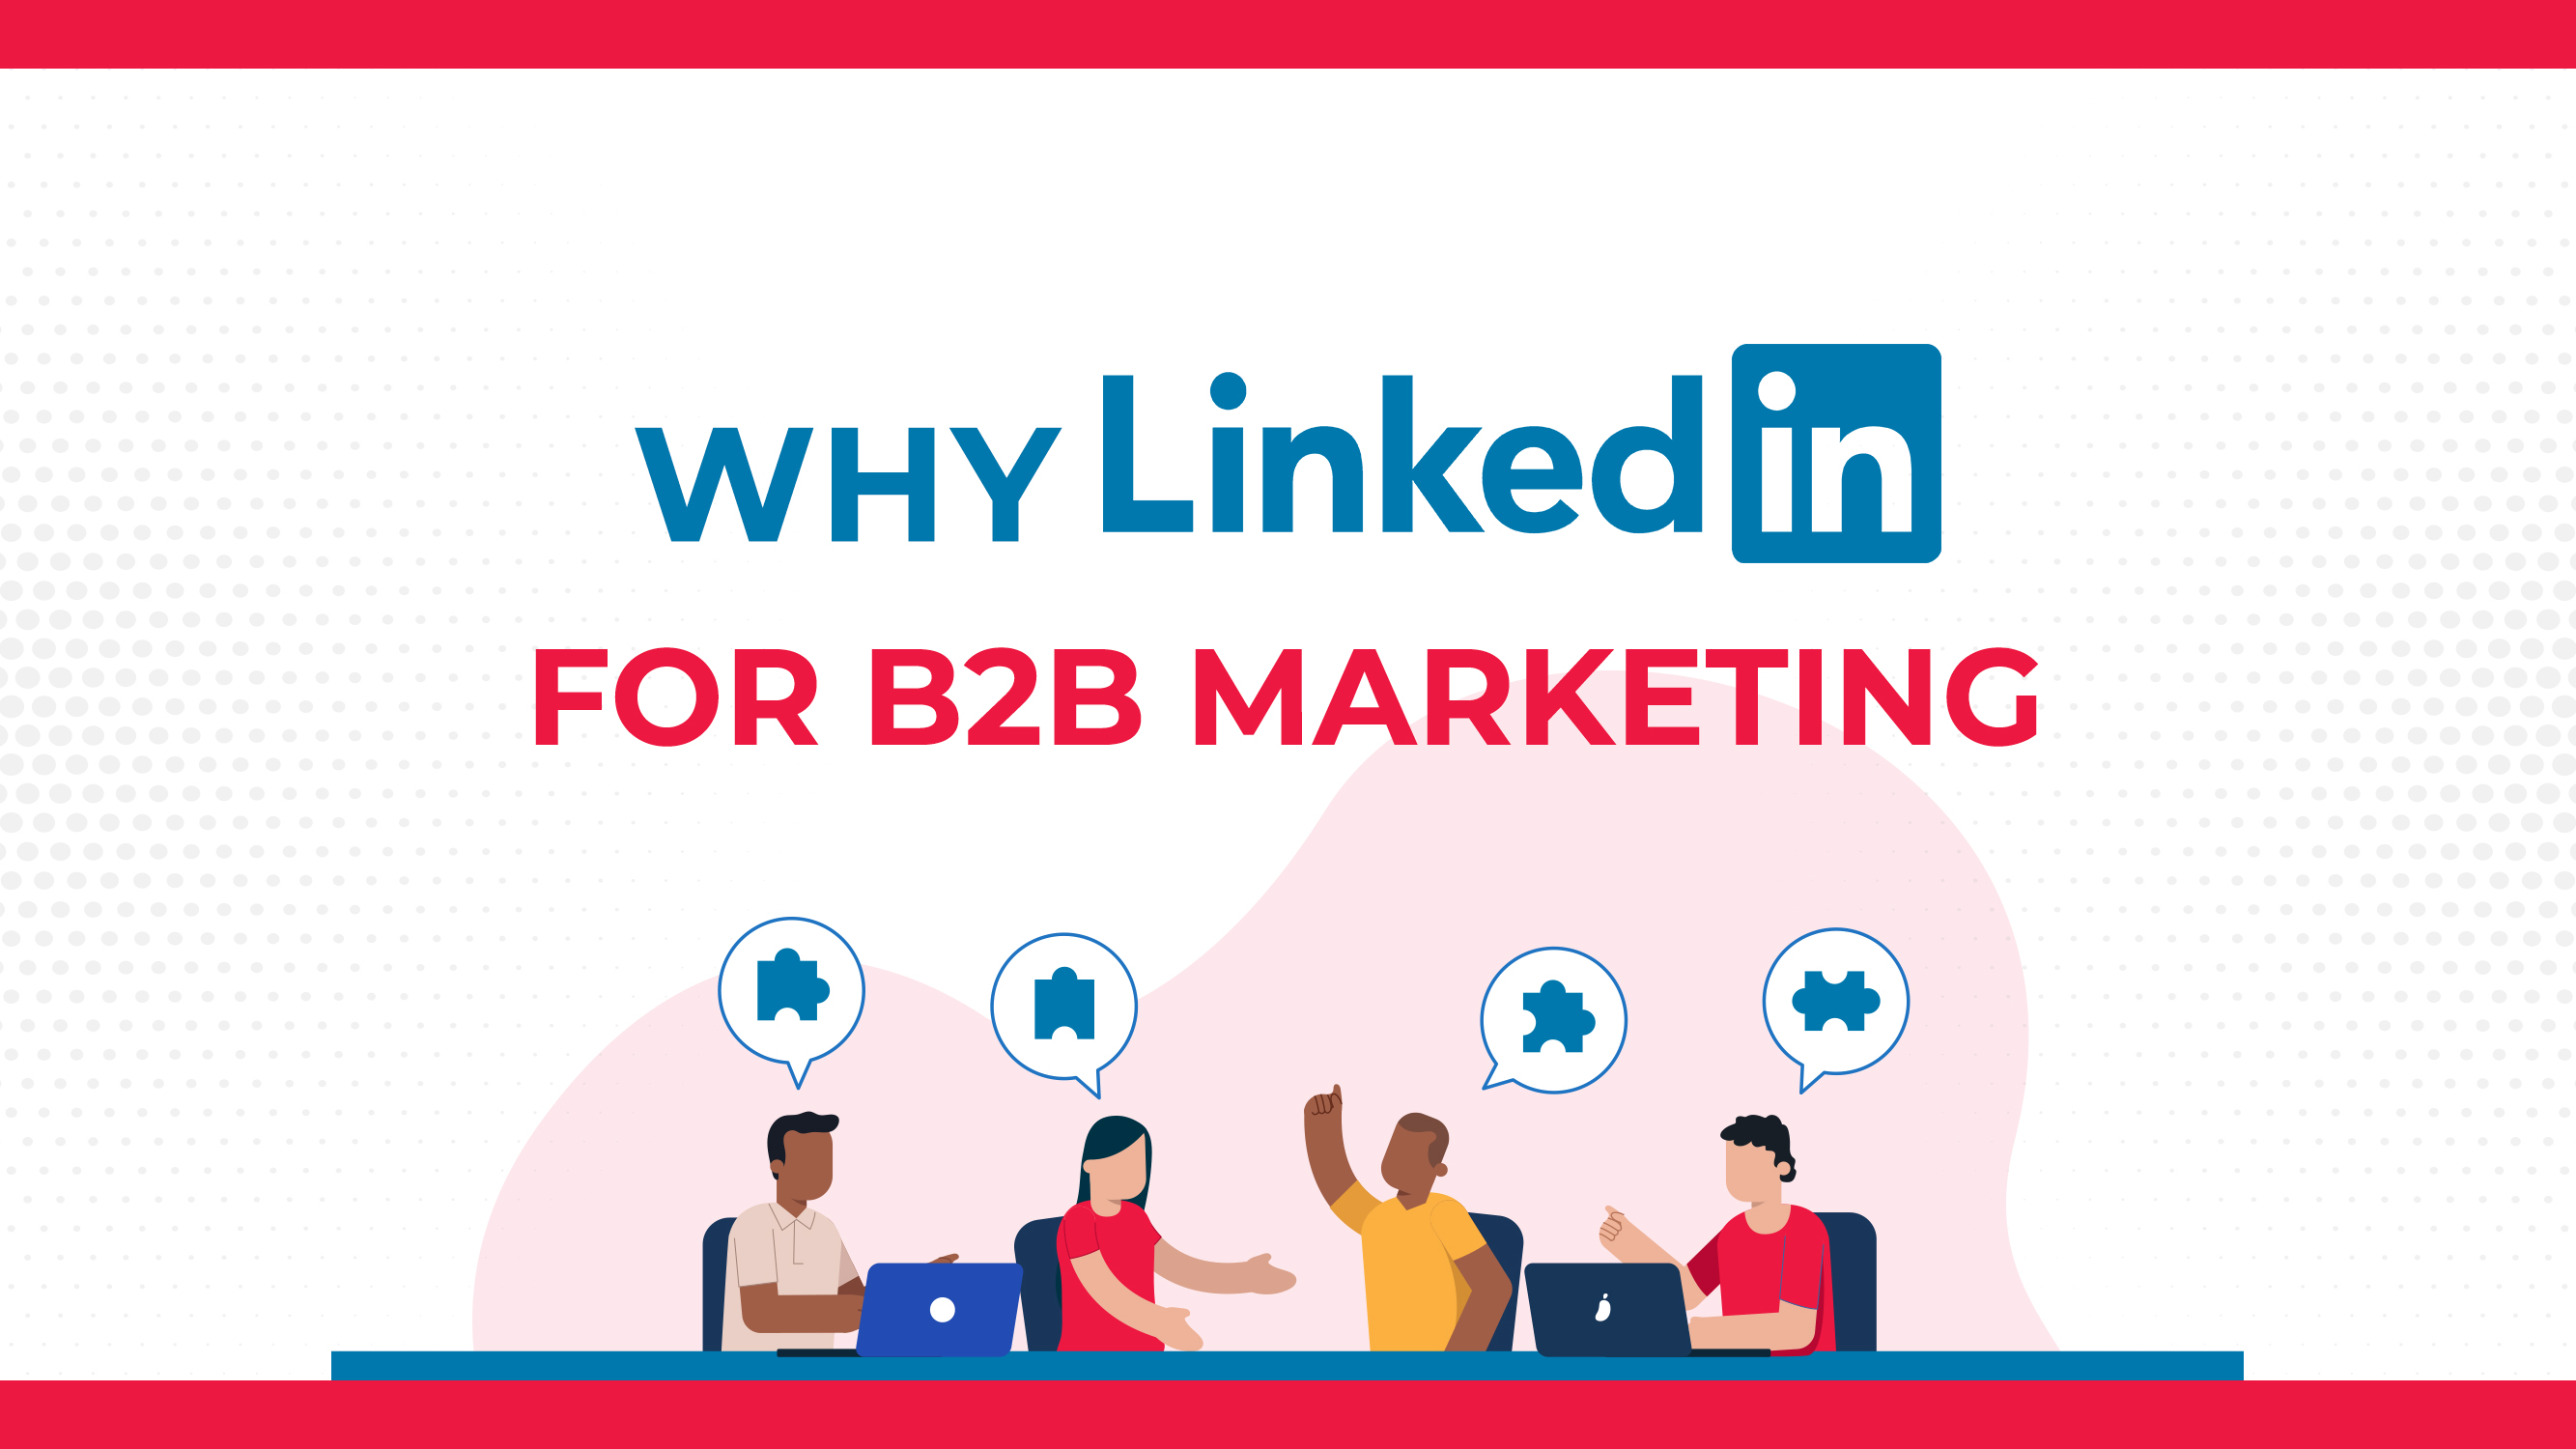 Por que escolher o LinkedIn para o Marketing B2B?